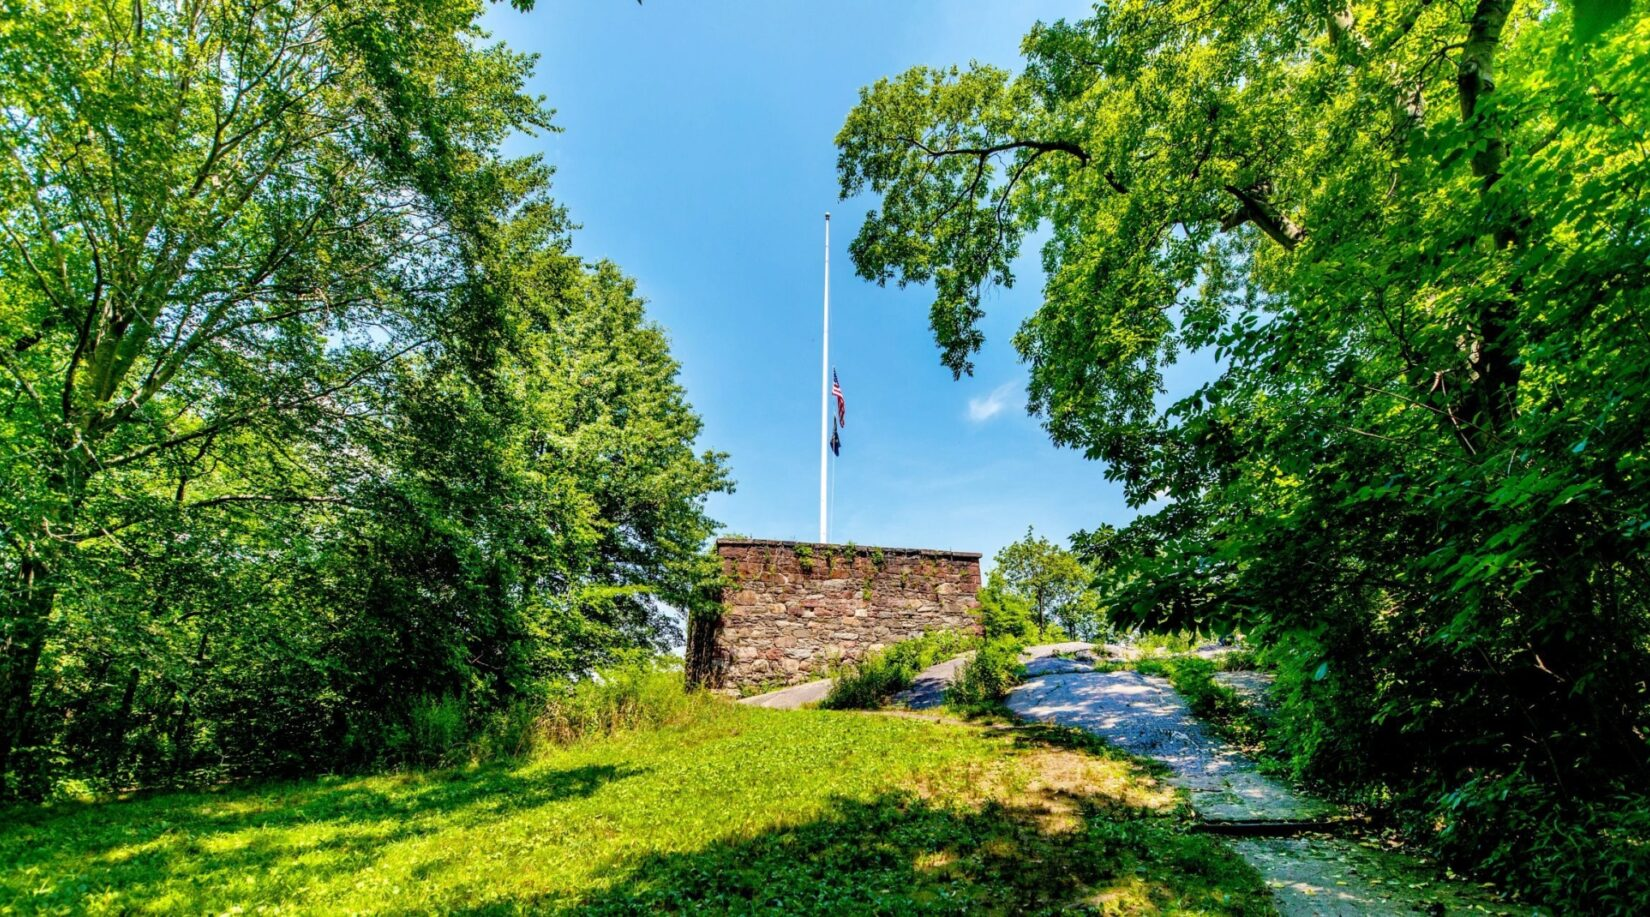 A view looking up the hill to the Blockhouse, topped with a white flagpole and a flag at half mast.